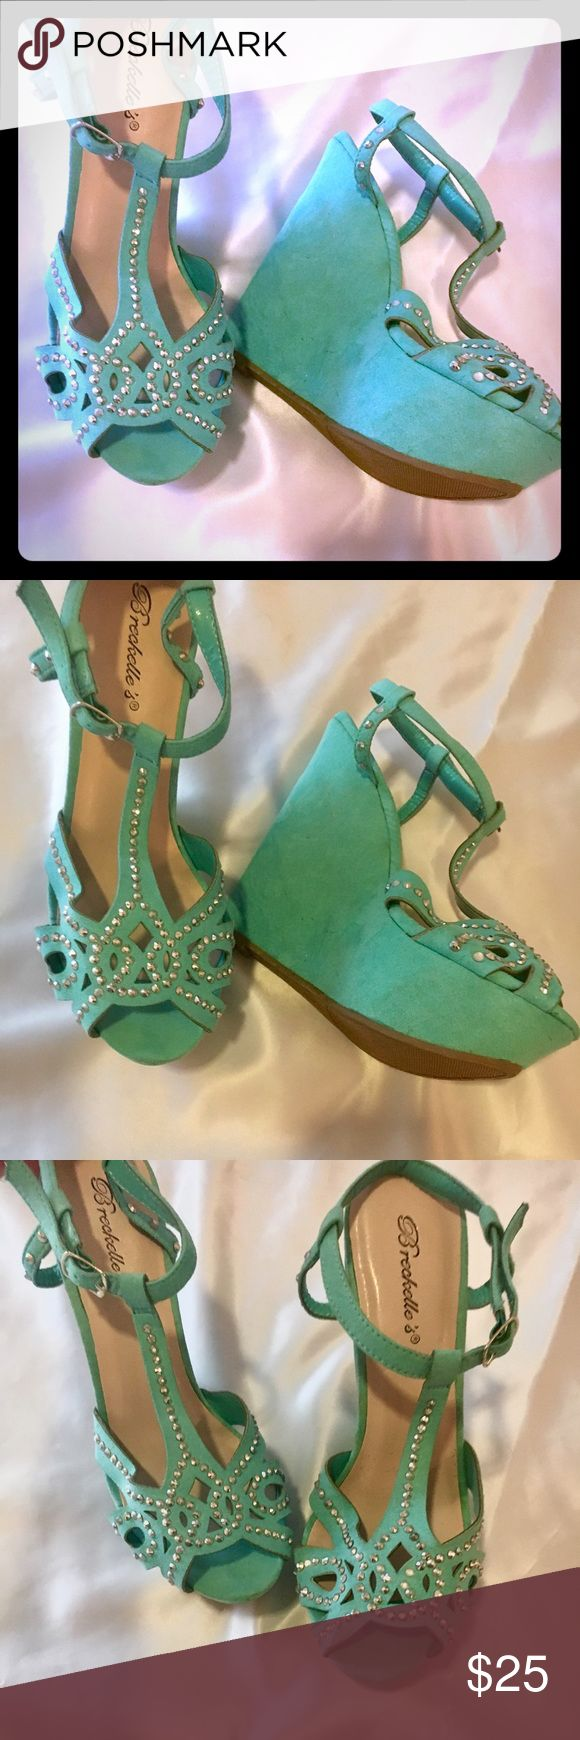 HOT 💗 Turquoise BLING Wedges Super cute size 8 turquoise wedges - covered in rhinestones!!  So much bling!!  Never worn but threw the box away. NWT!! Shoes Wedges